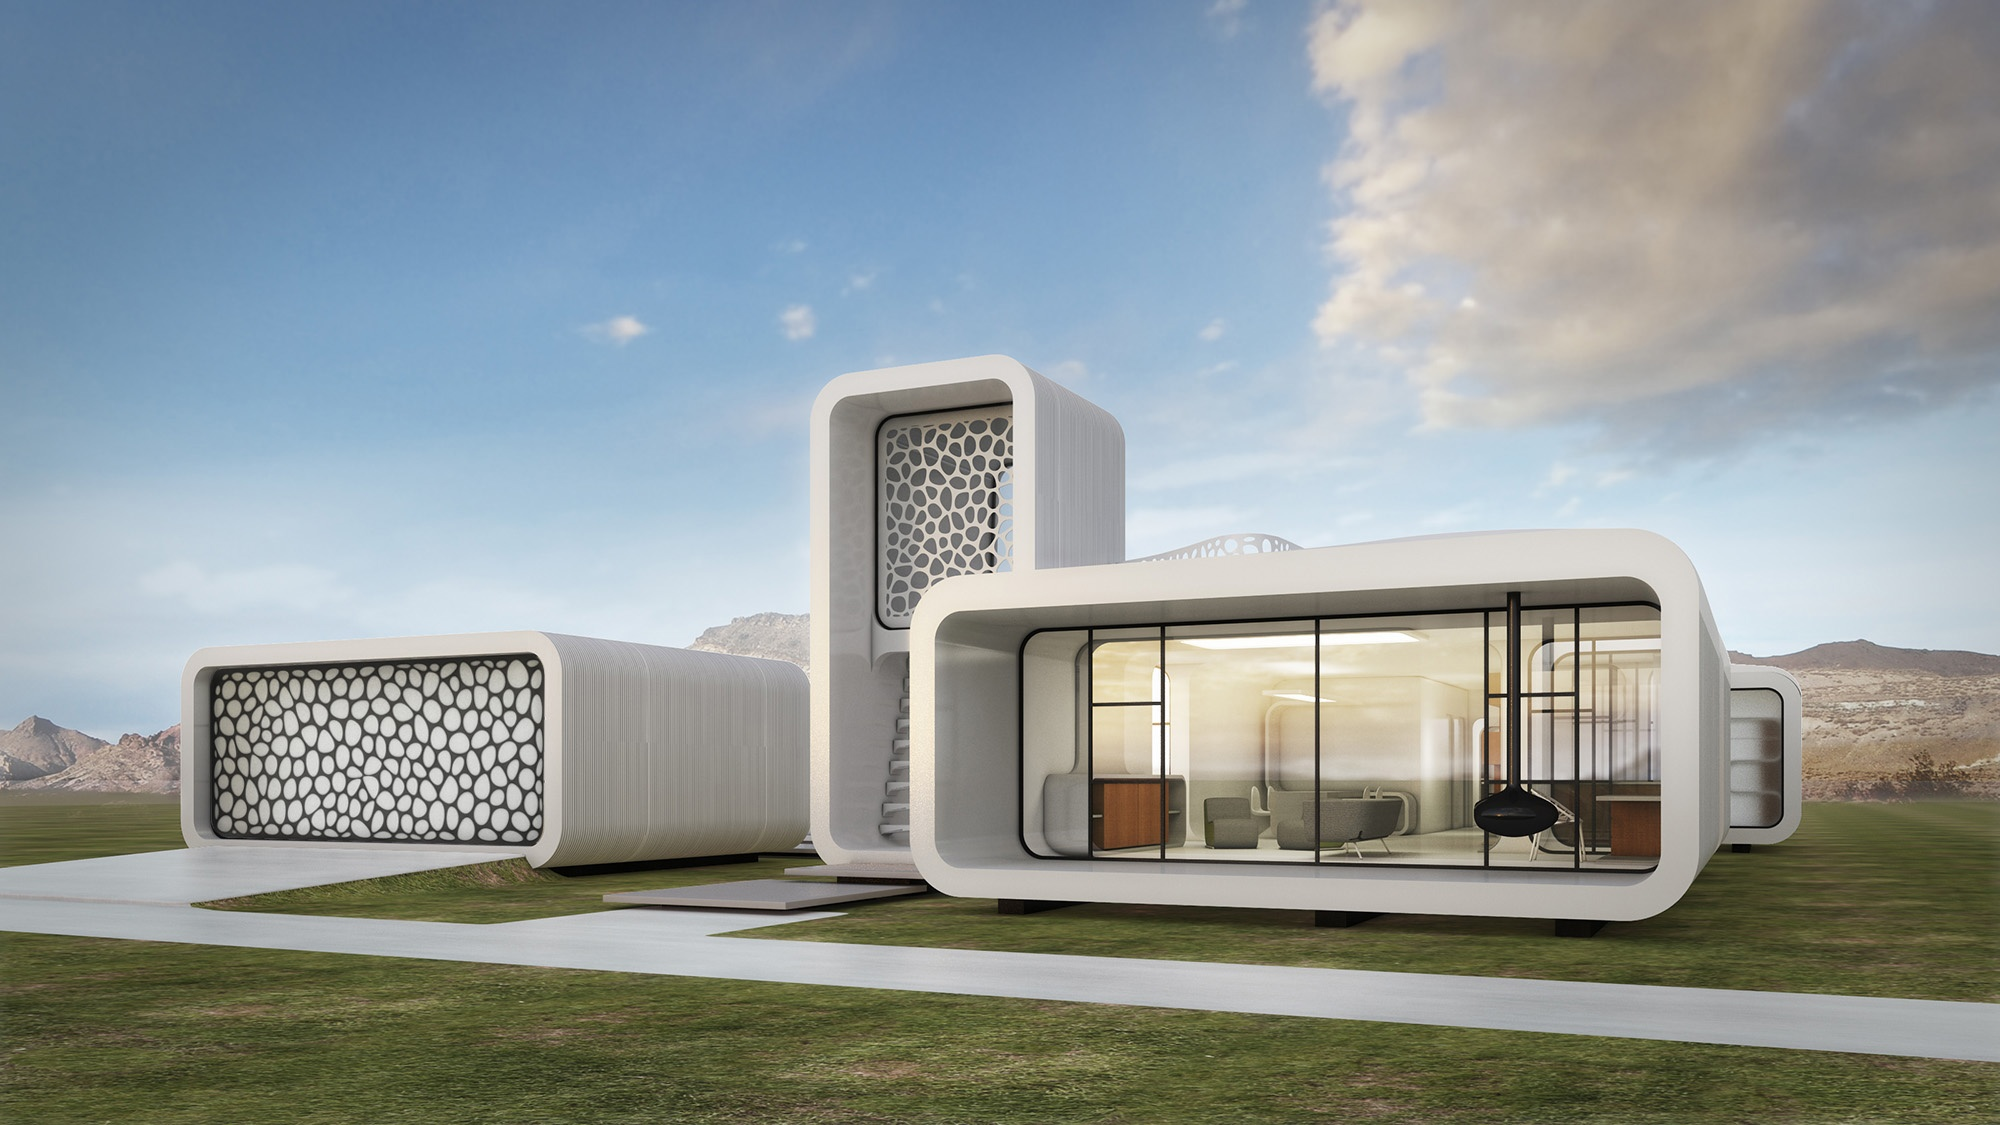 U201cDubai Said It Would Construct A Small Office Building Using A 3D Printeru201d